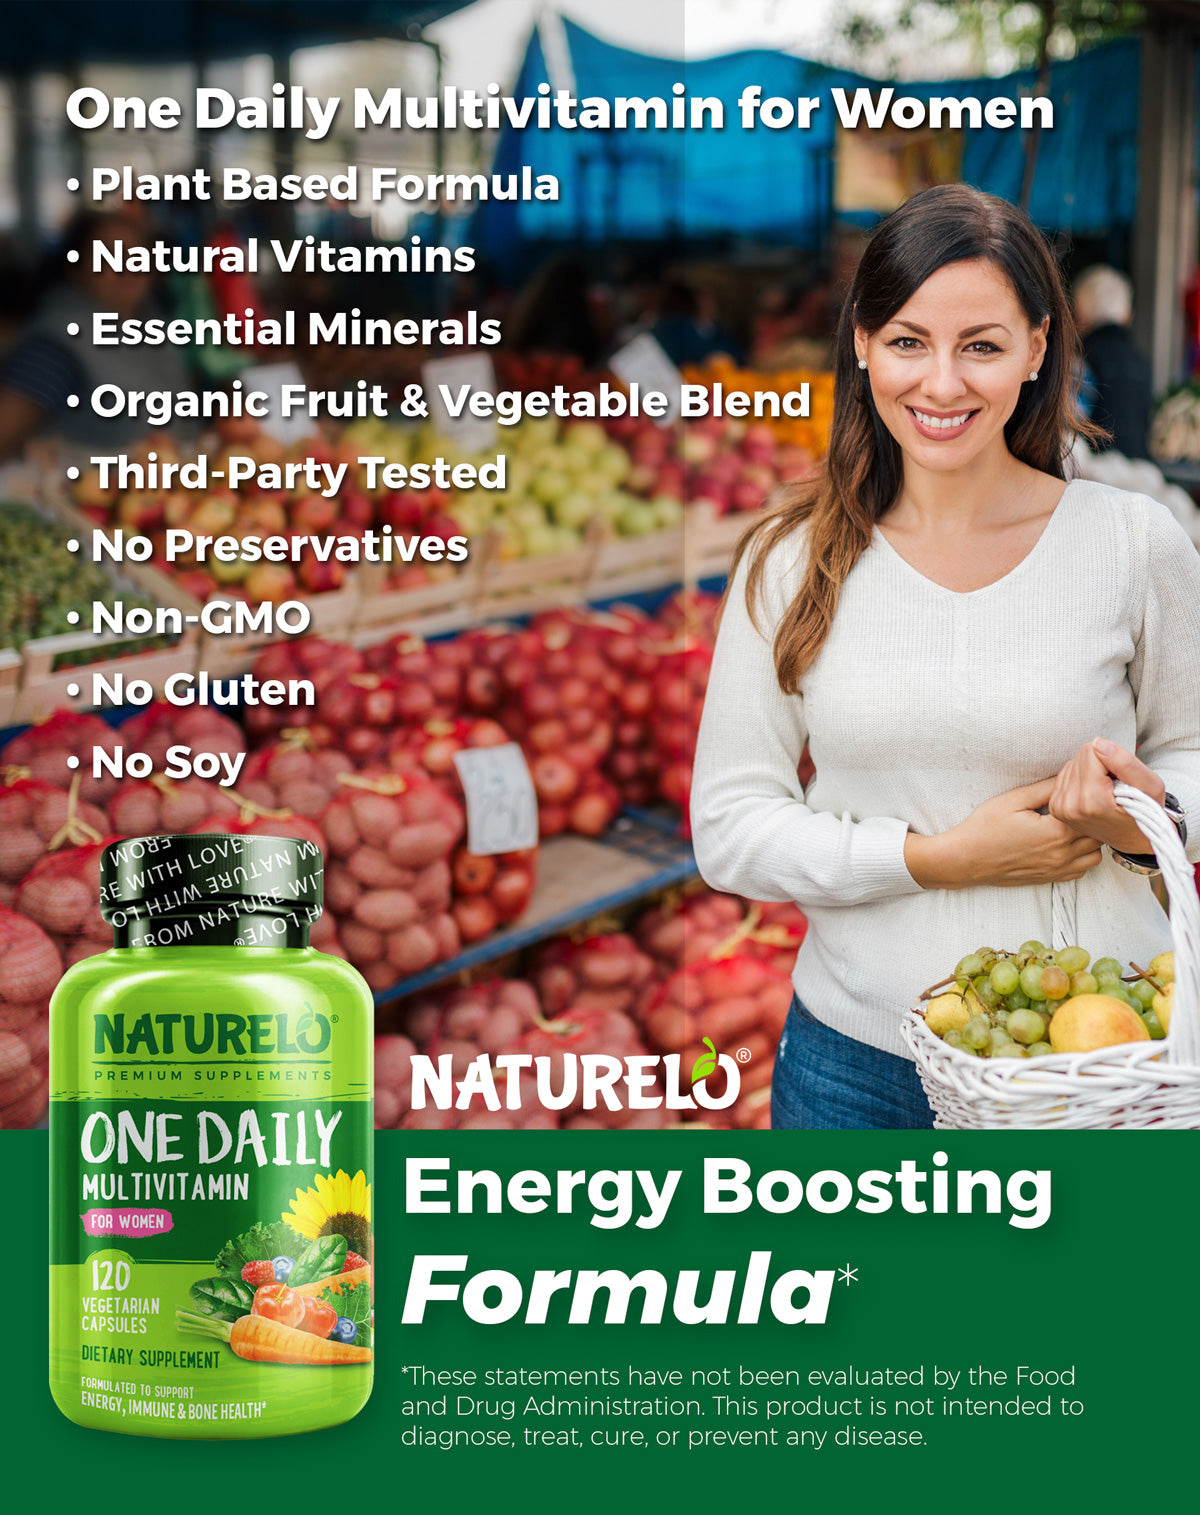 One Daily Multivitamin for Women Features